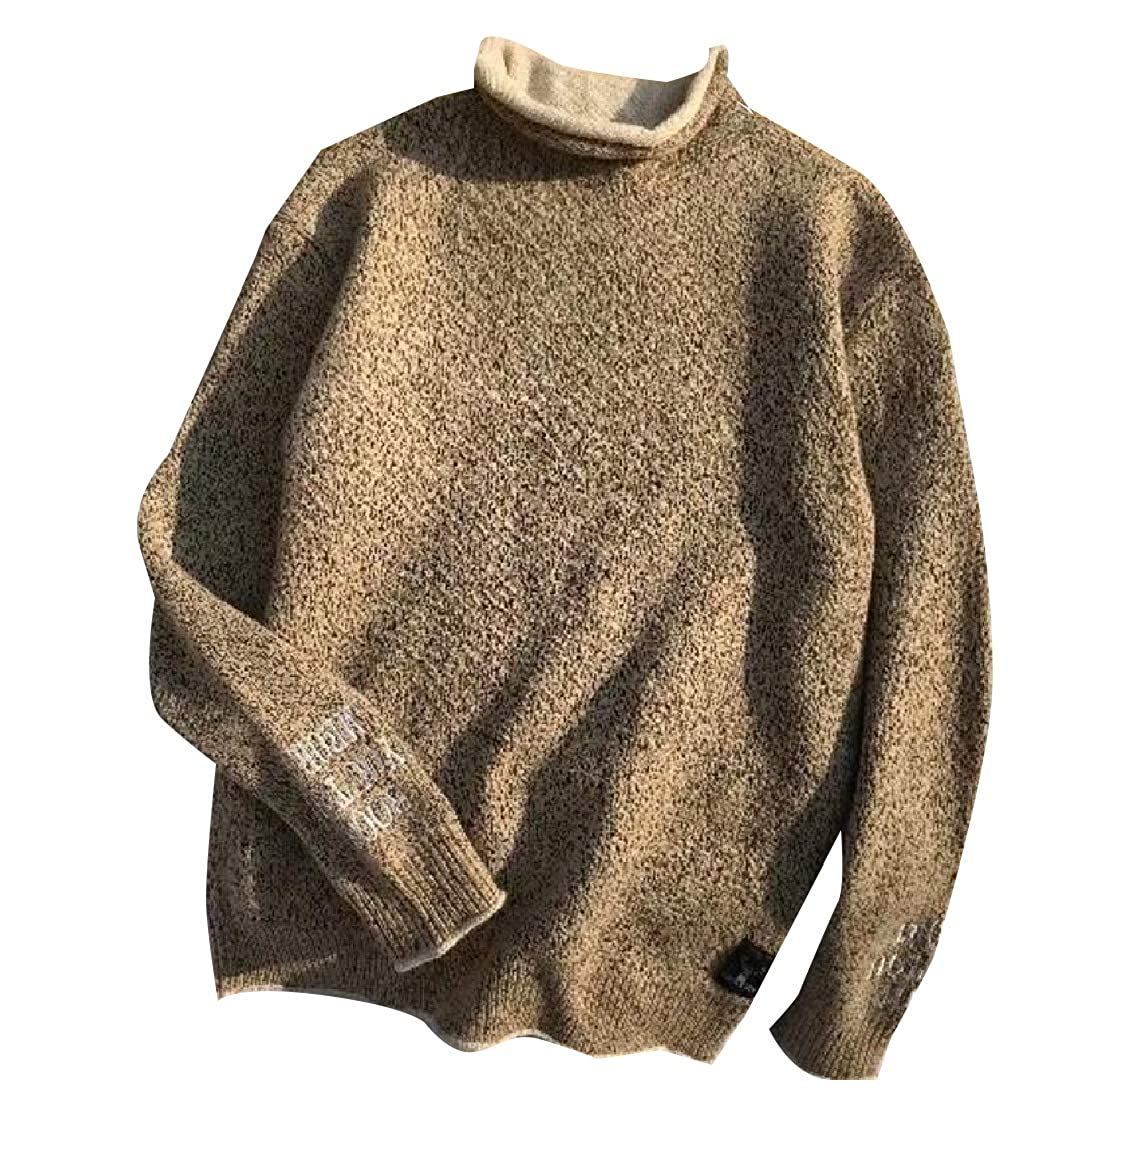 Andopa Mens Relaxed-Fit Fall Ribbed Knitted Oversized Sweater Pullover